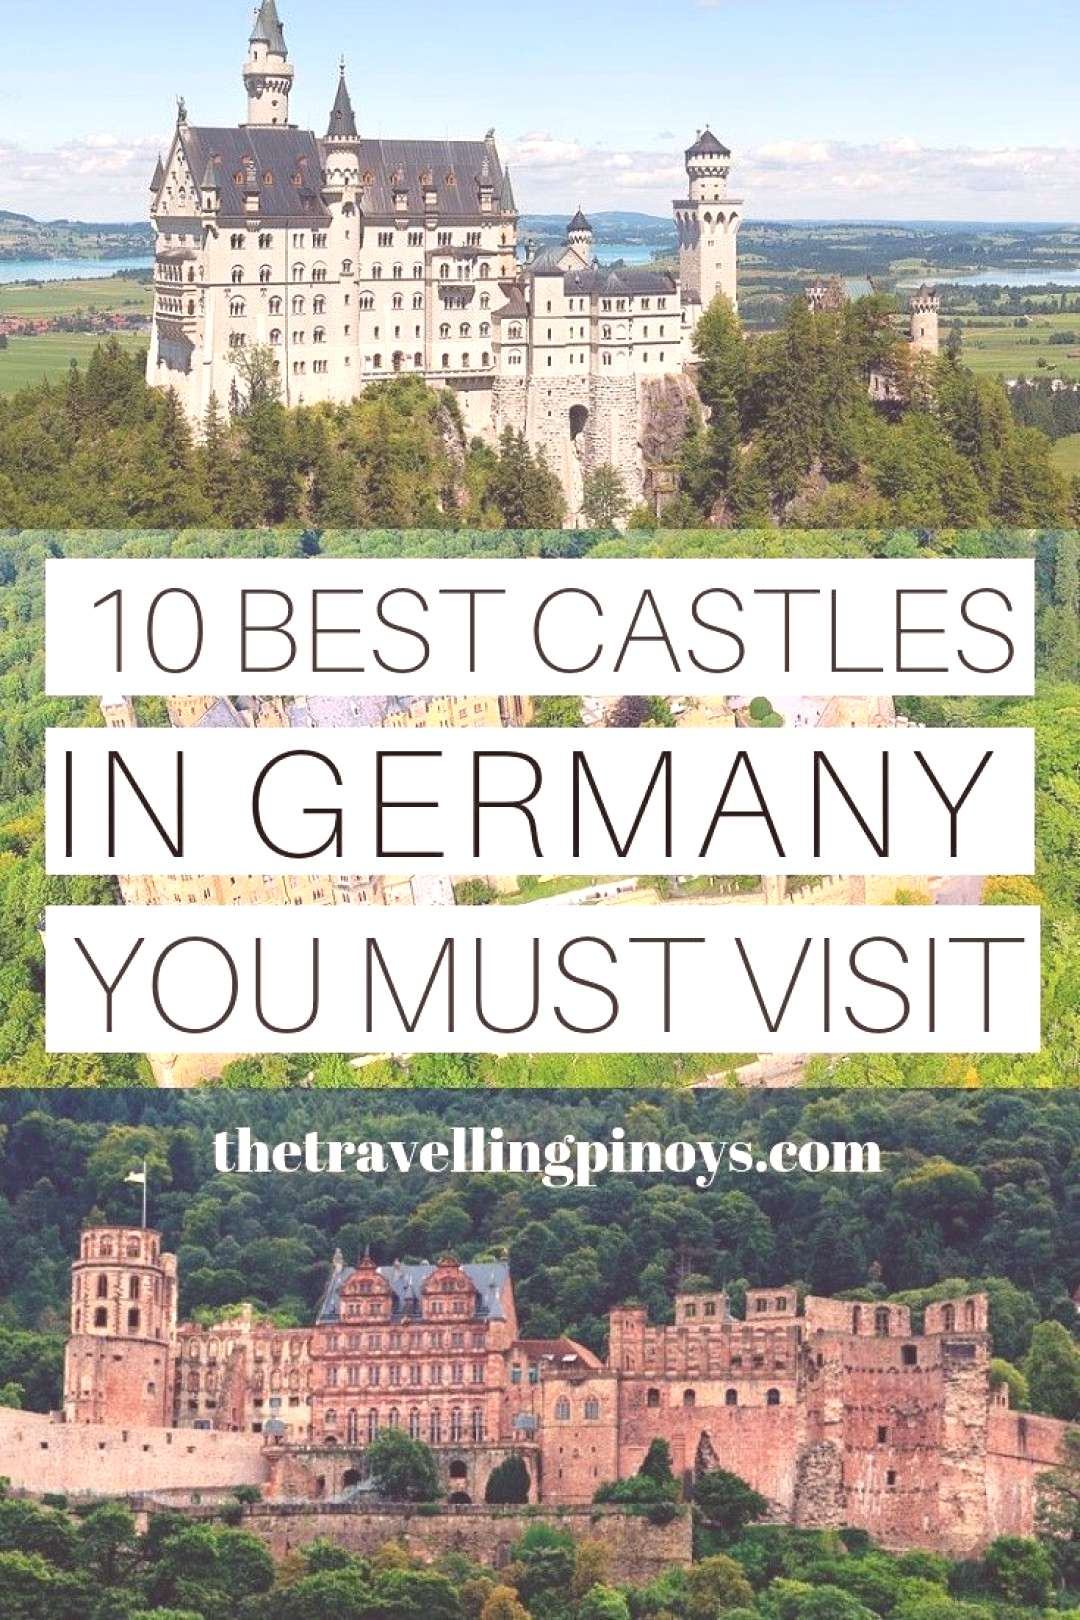 10 Best Castles in Germany You Must Visit 10 Best Castles in Germany | Germany travel tips | German